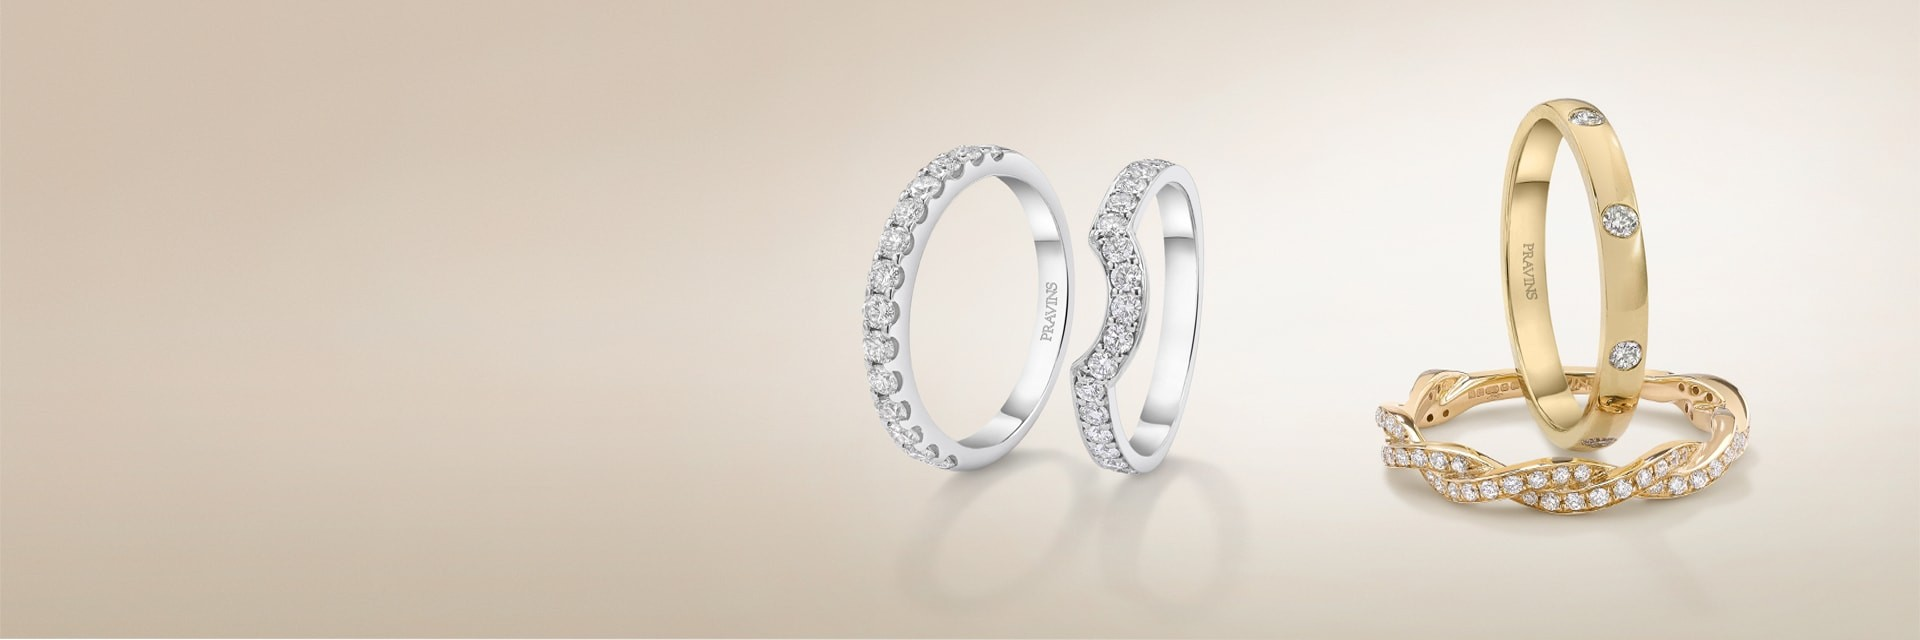 WITH THIS RING… PRAVINS WEDDING RINGS HAVE BEEN SYMBOLS OF LOVE AND DEVOTION FOR FIVE DECADES.